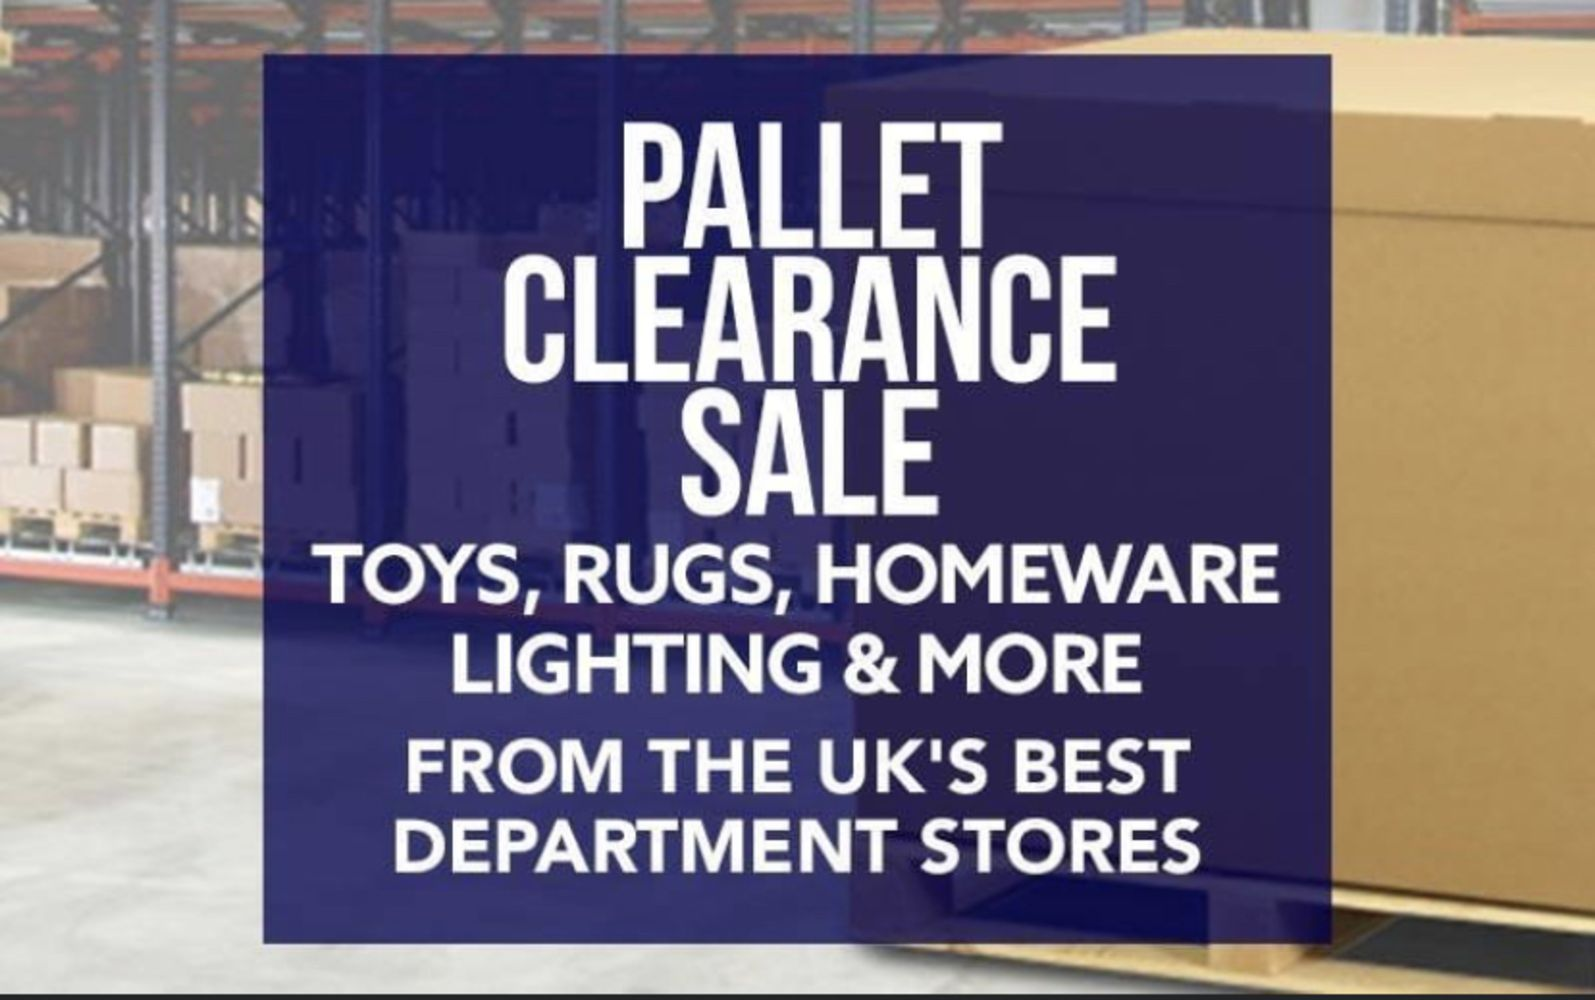 No Reserve - Pallet Clearance Sale! 25th January 2021